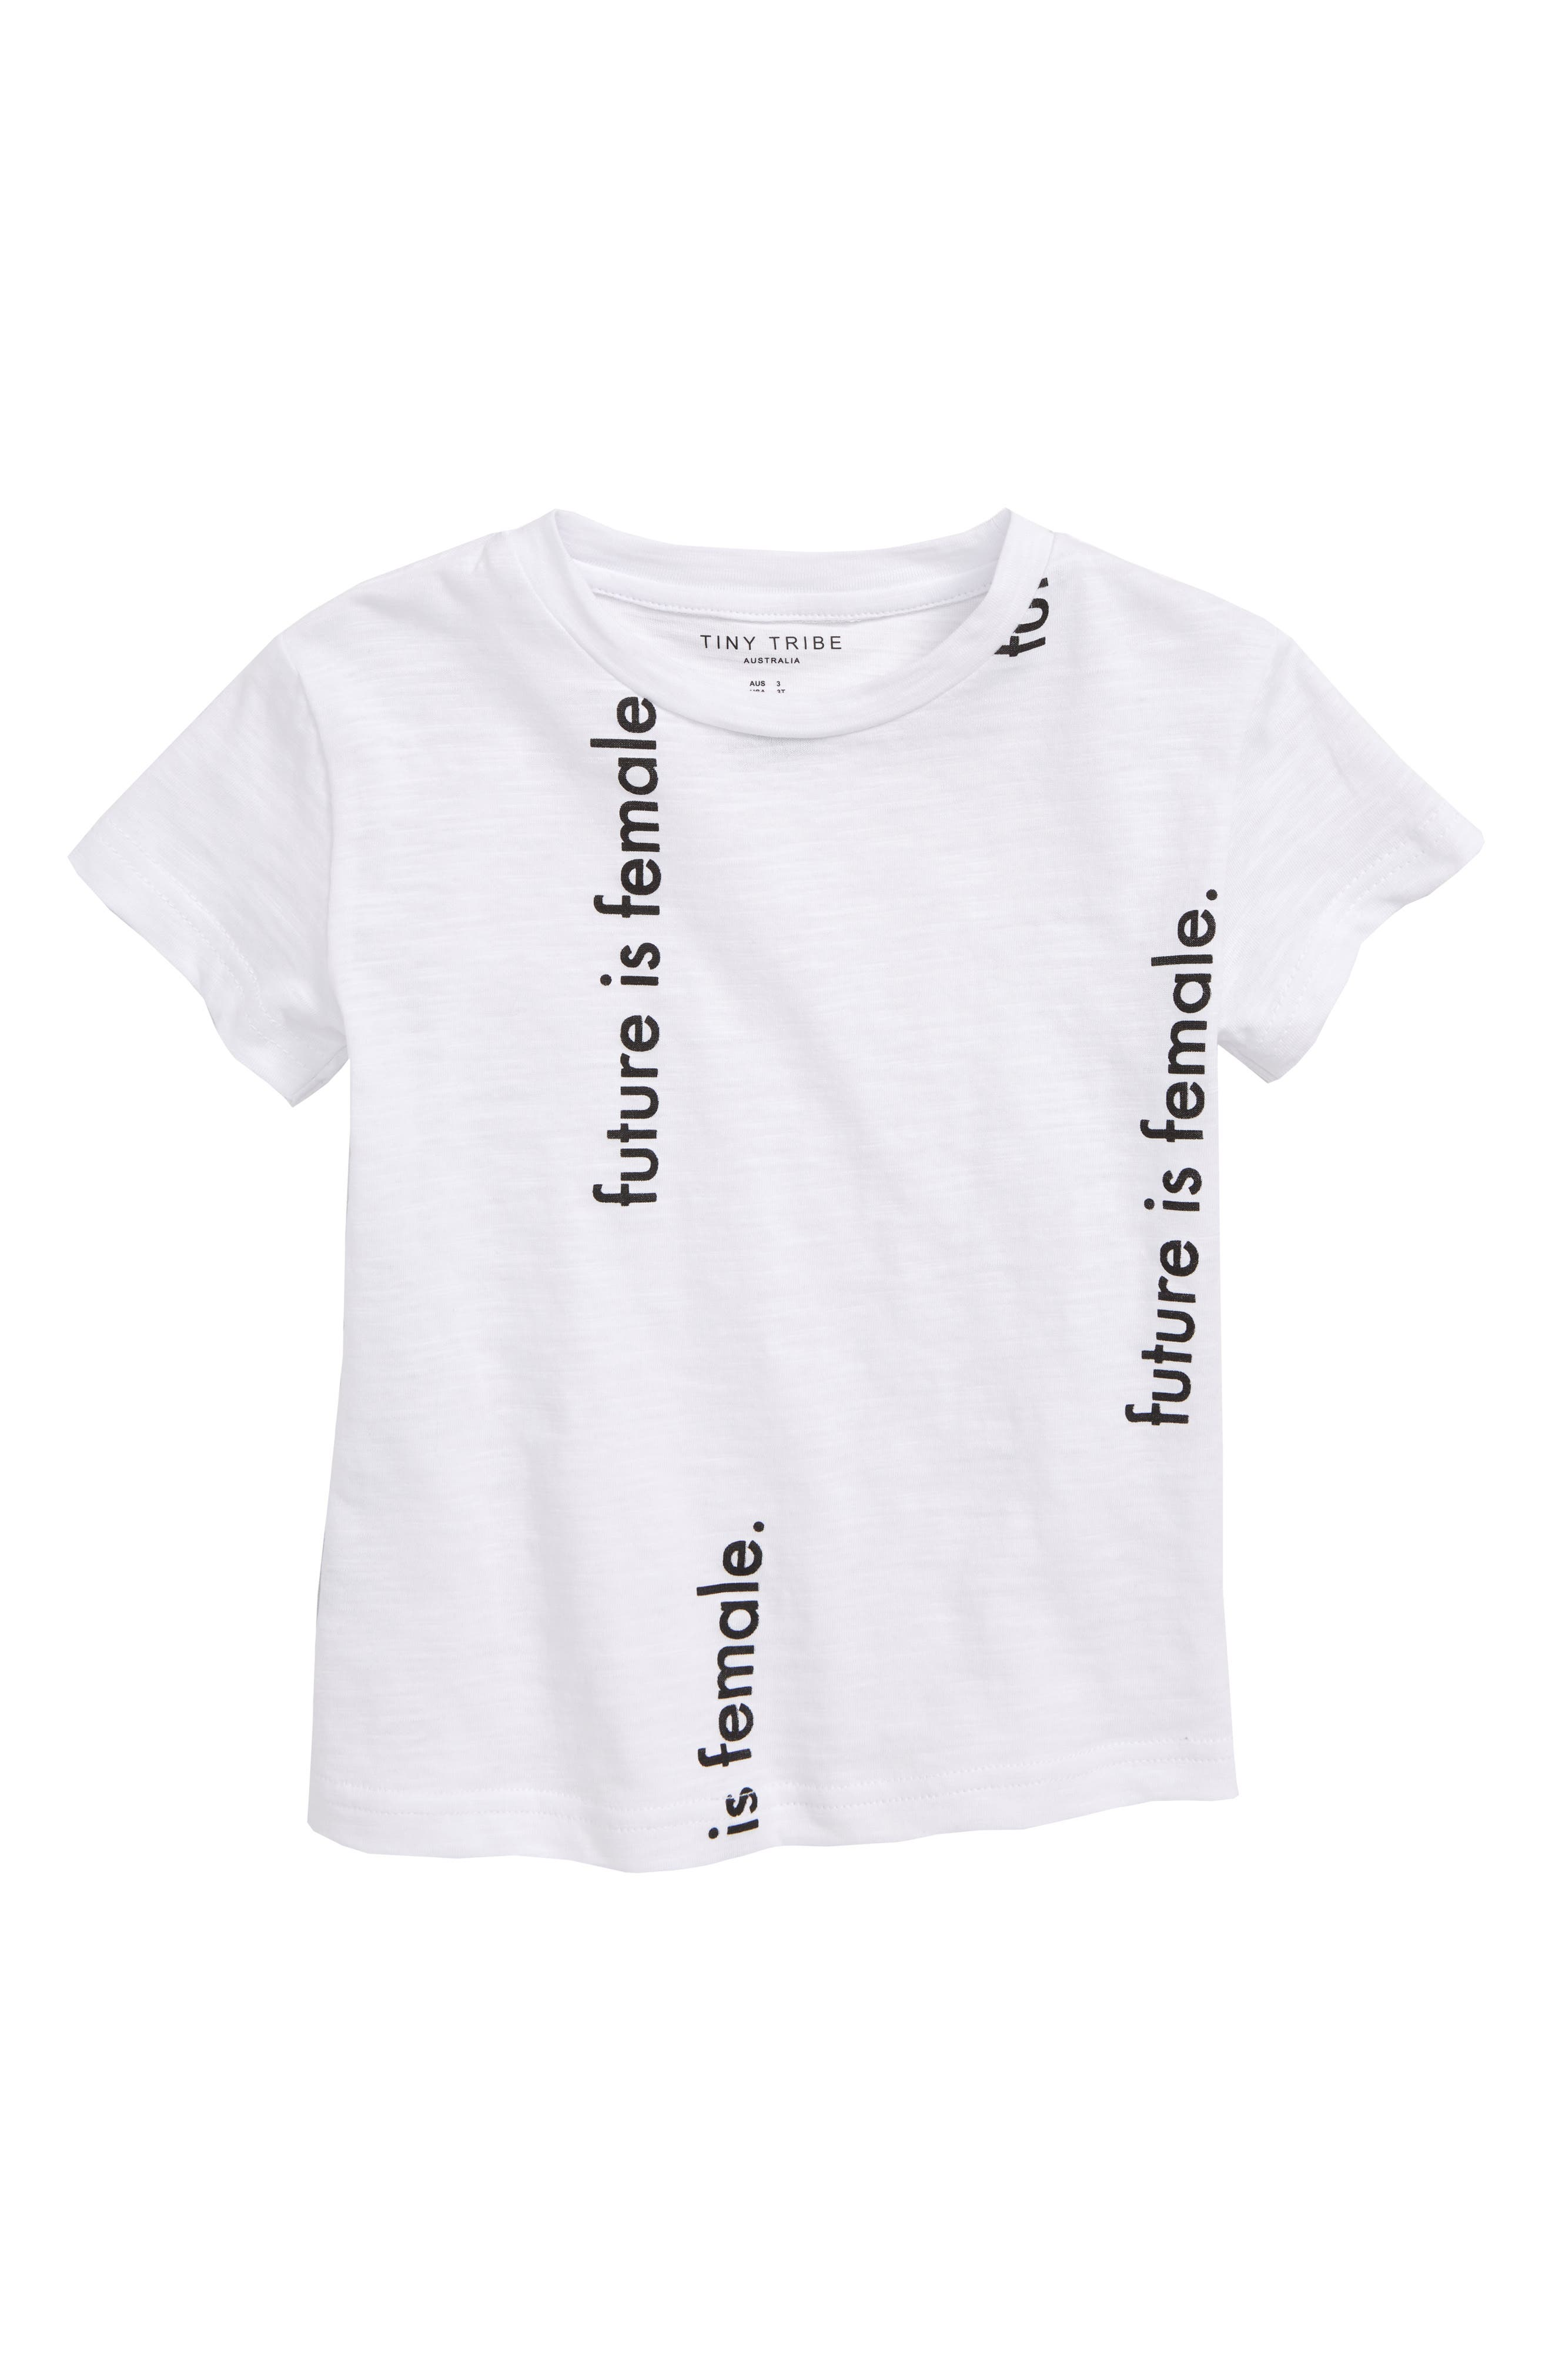 TINY TRIBE,                             Future is Female Graphic Tee,                             Main thumbnail 1, color,                             100